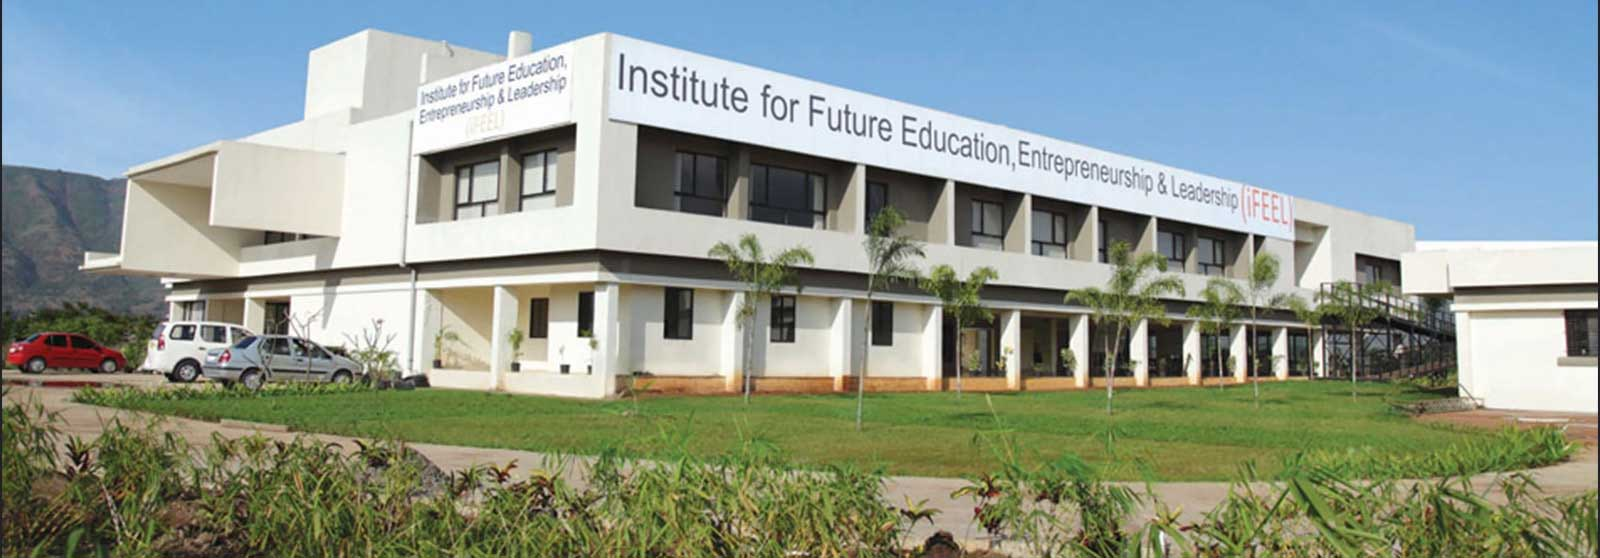 Institute for Future Education building